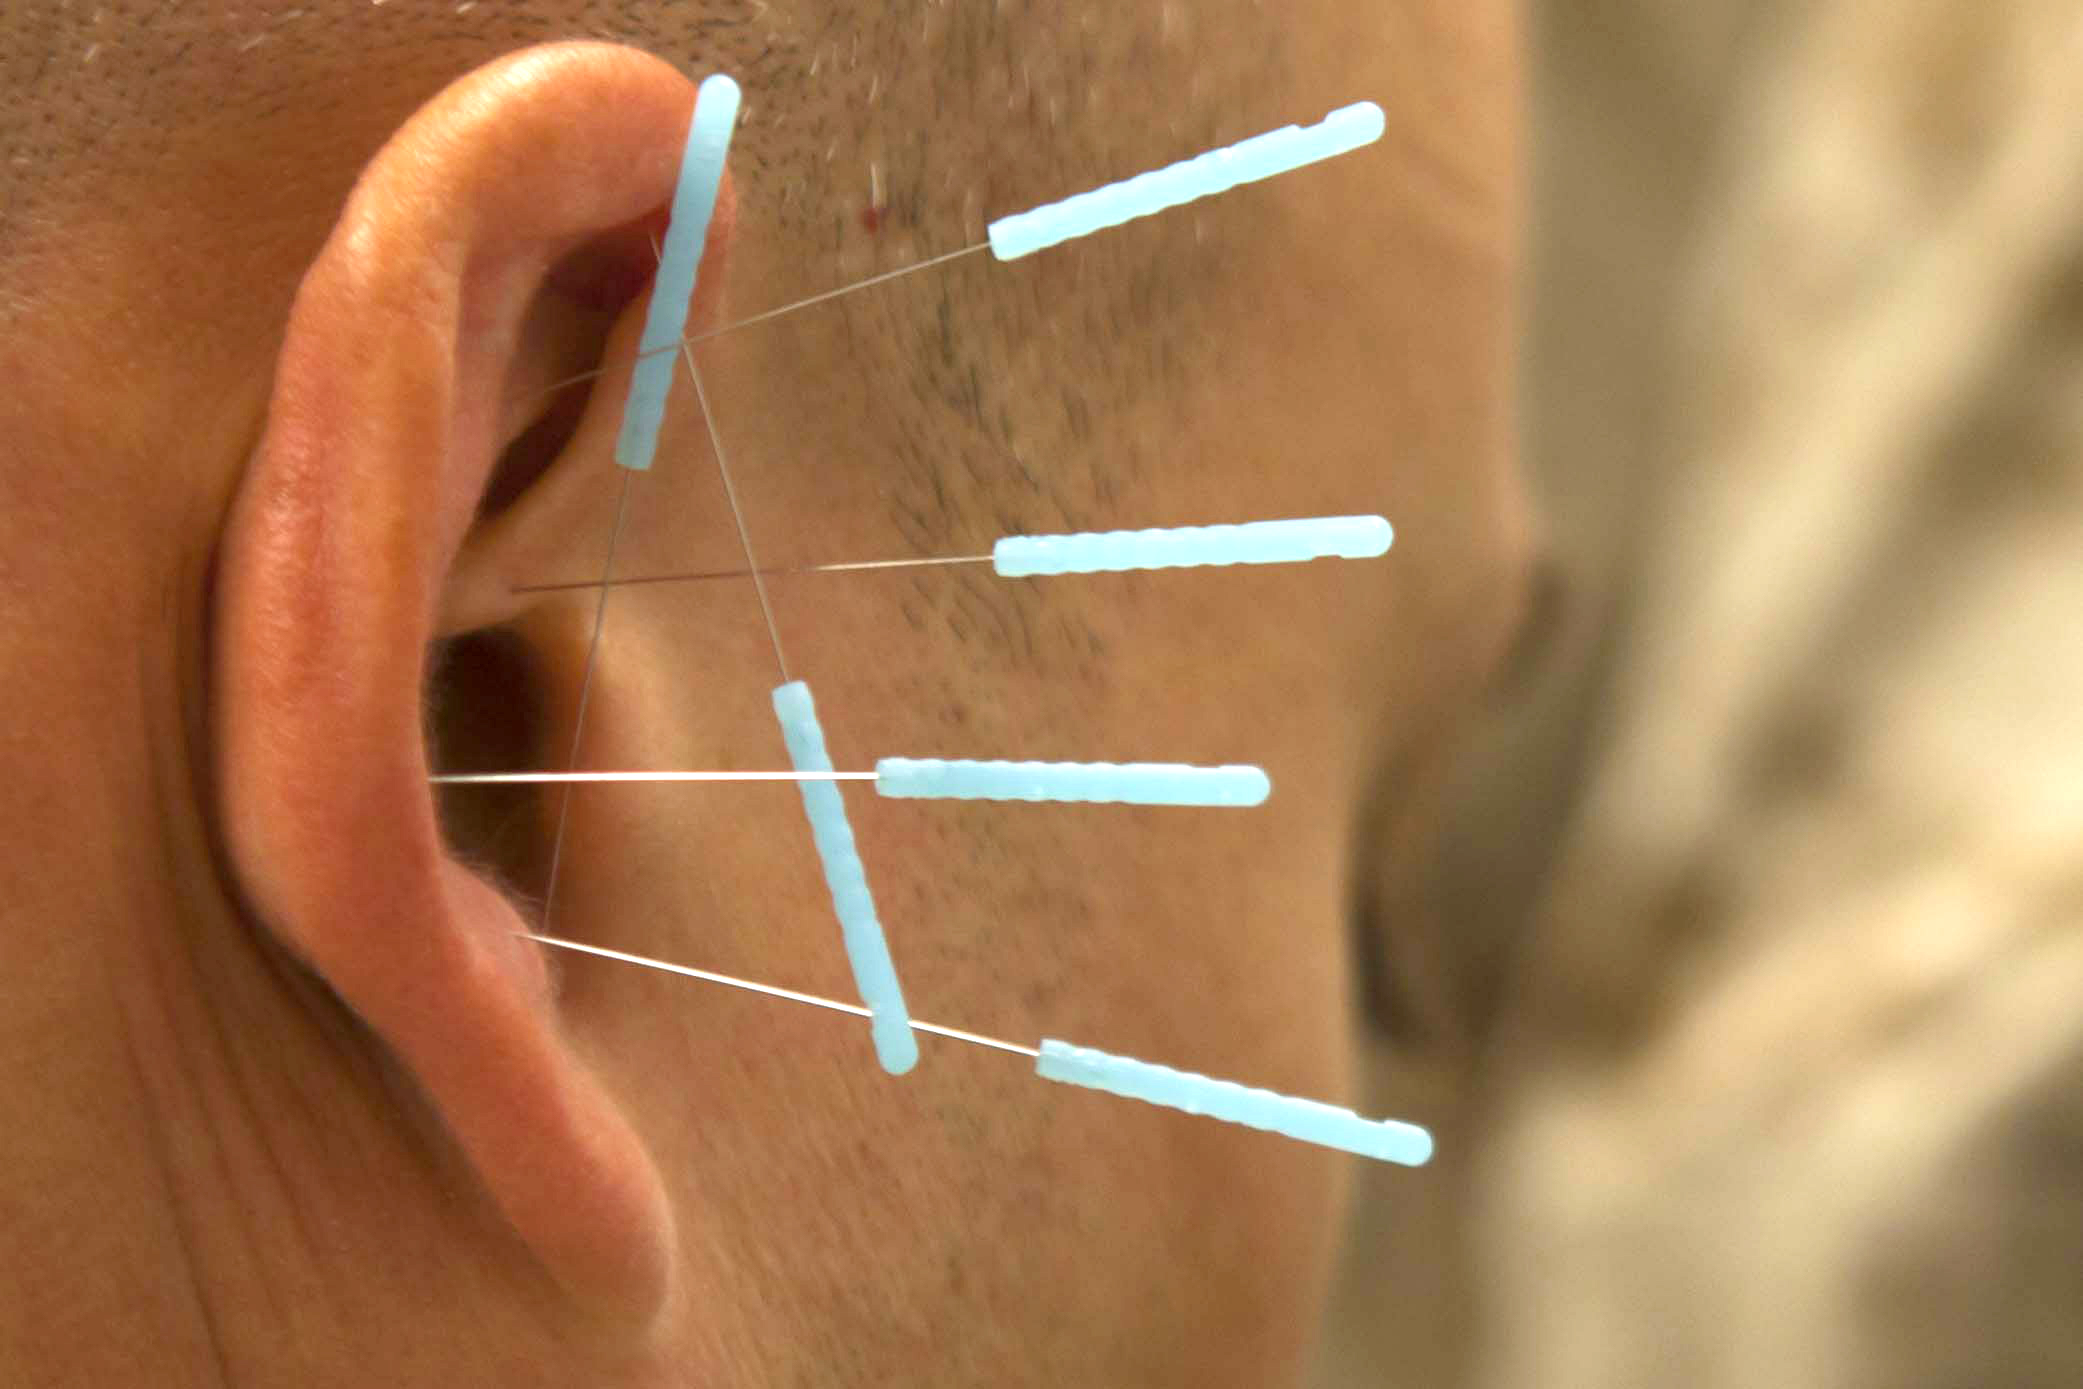 Jean-Michel Éte, Jeanmichelete, Traditional Chinese Medicine, Acupuncture, Osteopathy, Herbal Medicine, Cupping, Moxibustion, Gua Sha, Auriculotherapy, Tuina, Oriental Medicine, Holistic Therapy, Crania-Facial Therapy, Somato Emotional Release, NYC, Biological Decoding